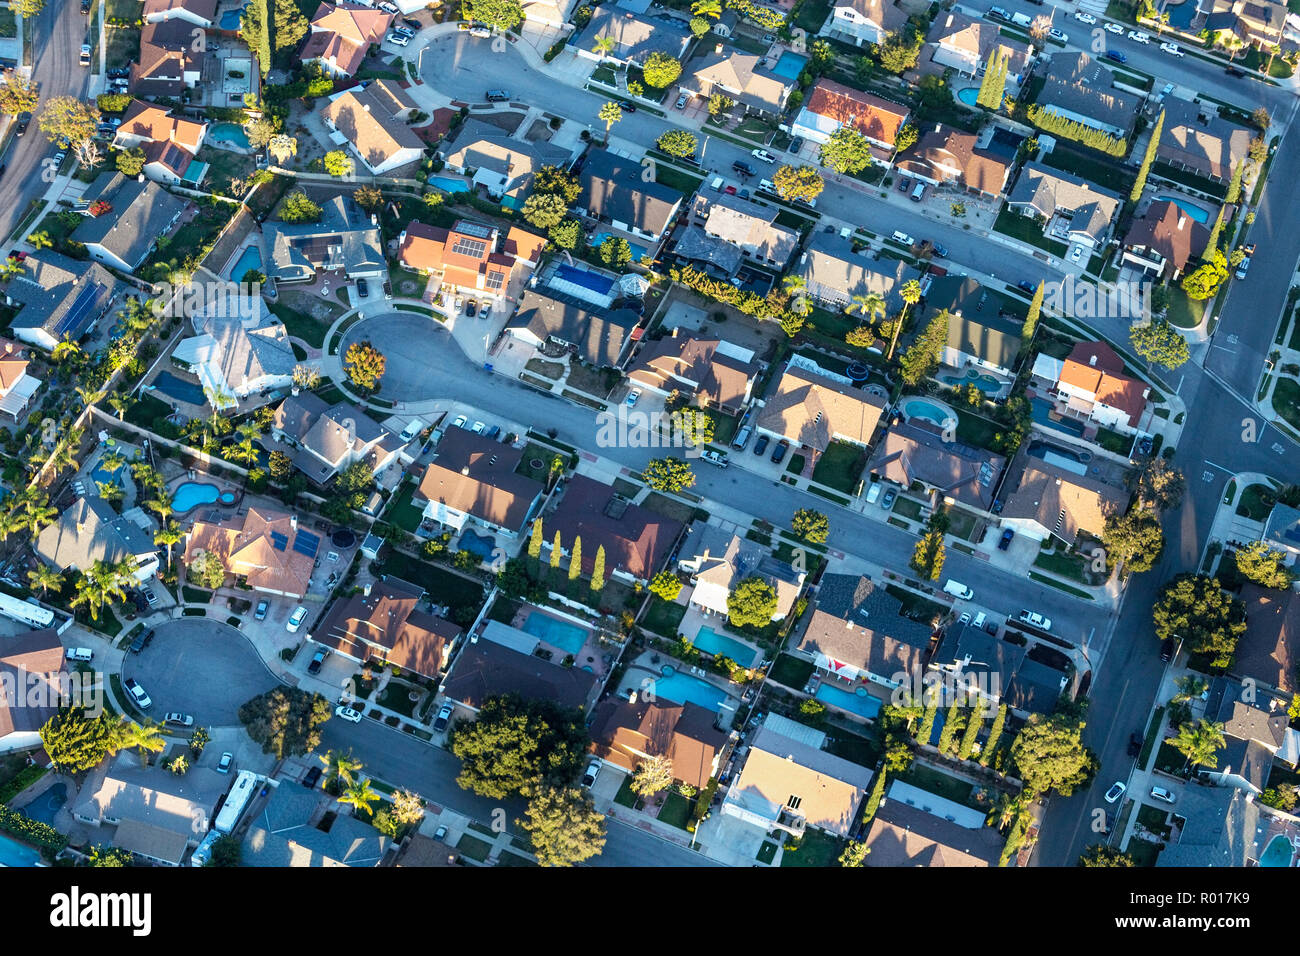 Late afternoon aerial view of modern suburban cul-de-sac streets and homes near Los Angeles in Simi Valley, California. - Stock Image